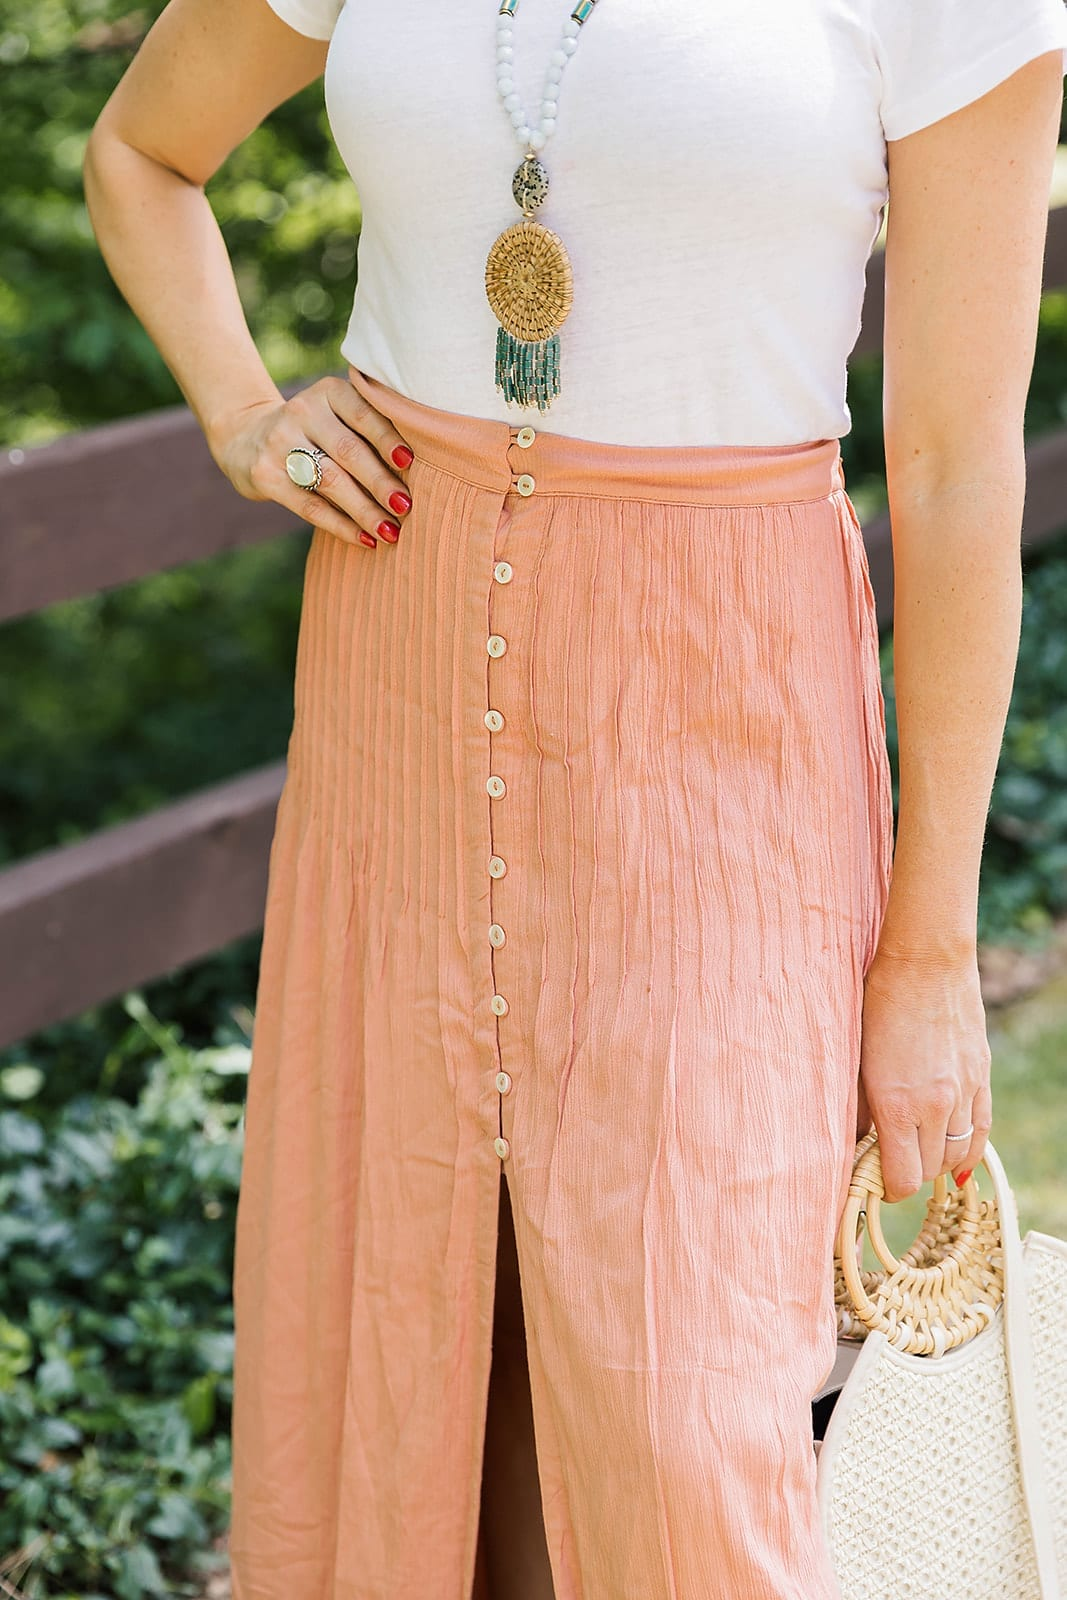 Orange Maxi skirt from Revolve for summer bright fashion fun!